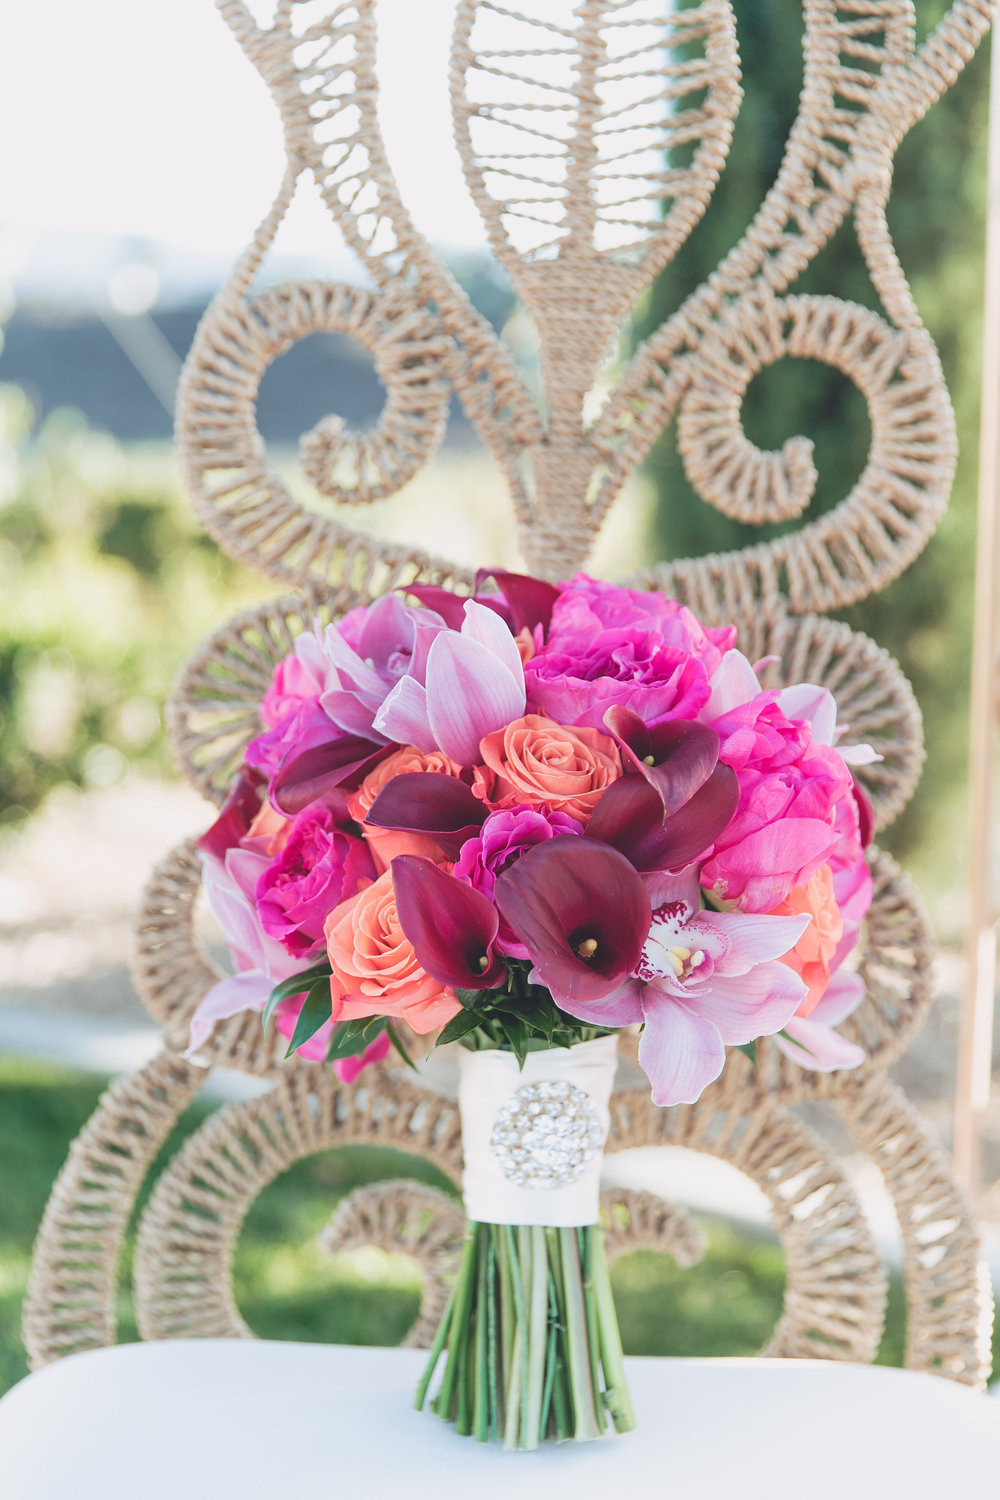 Hindu Fusion in Fuchsia, Orange and Gold at Avensole Winery | Leah Marie Photography | Michelle Garibay Events